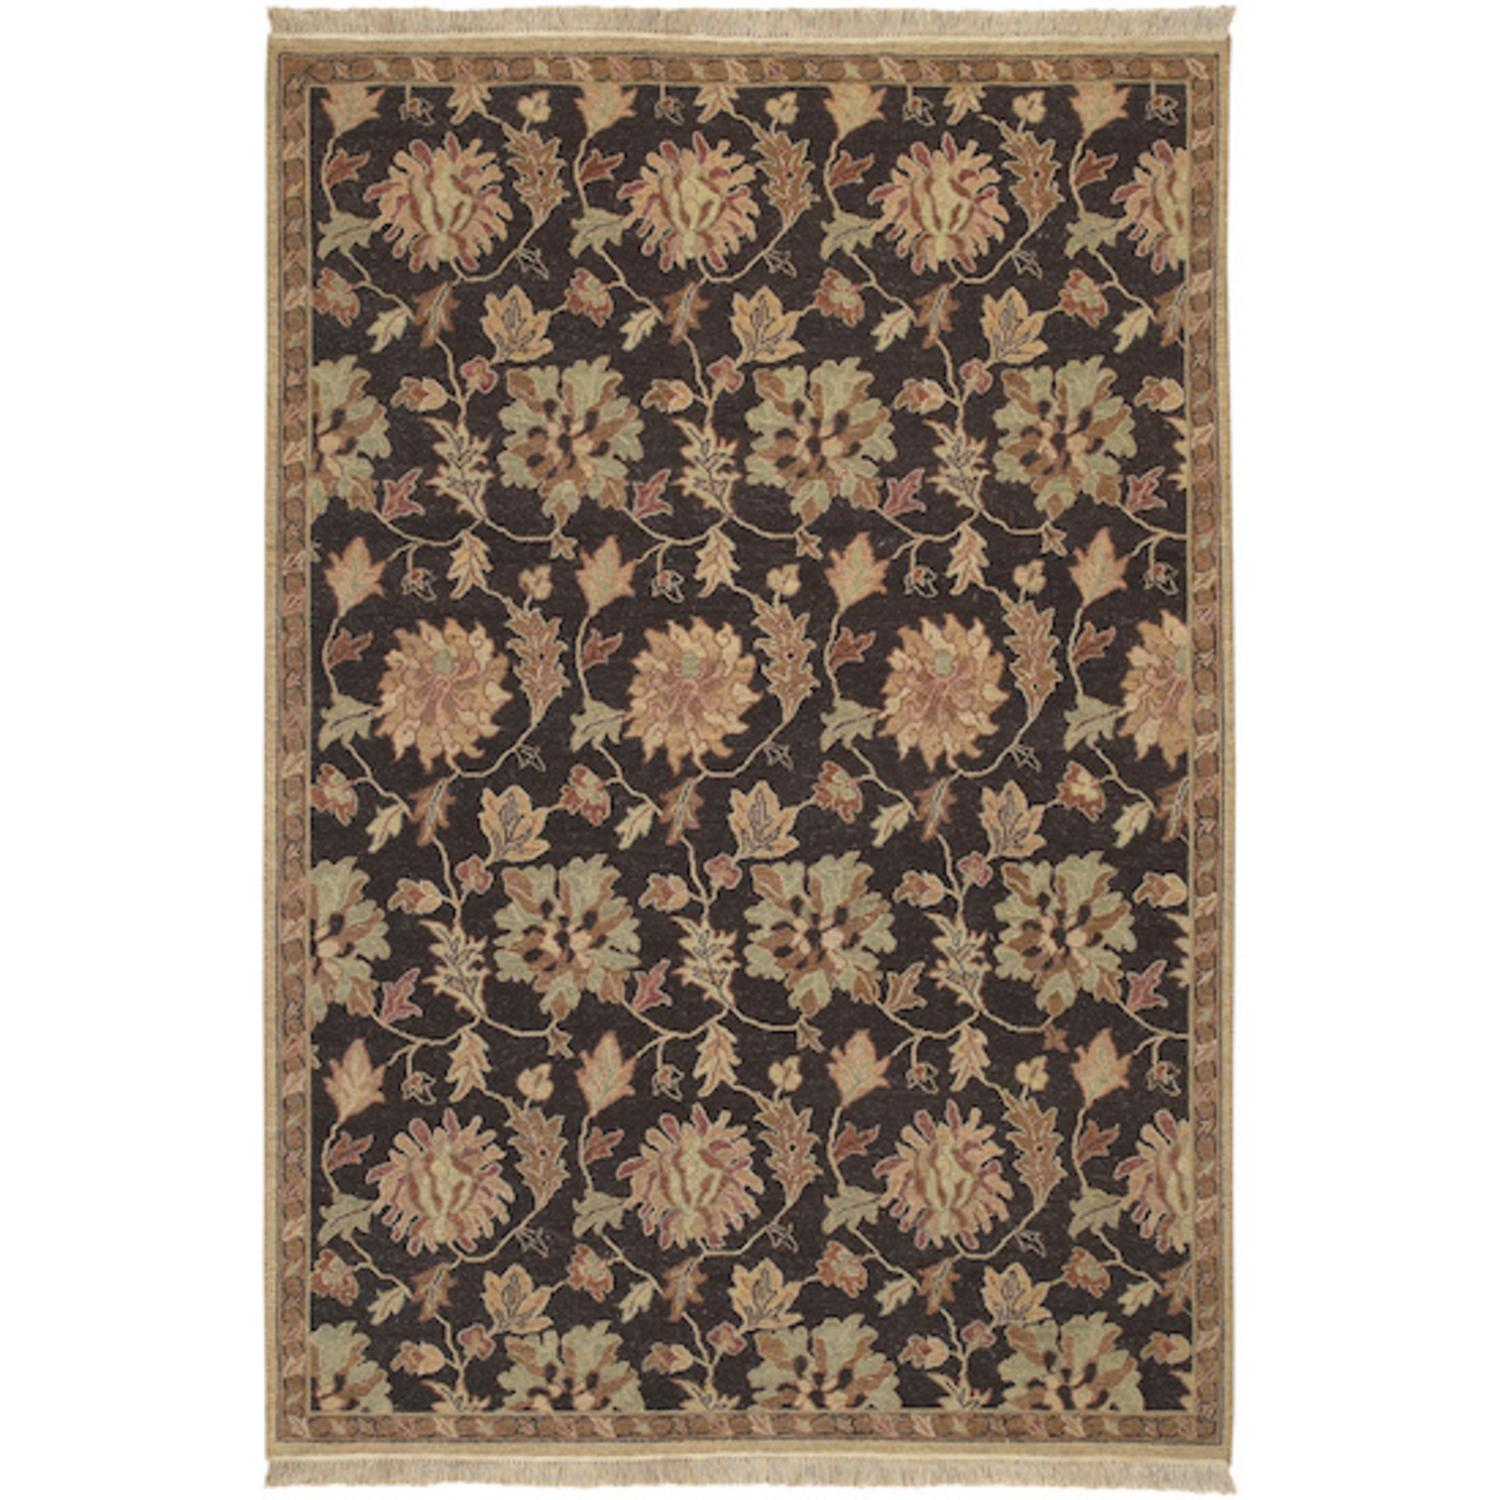 10' x 14' Spanish Ivy Eggplant and Rose Wool Area Throw Rug